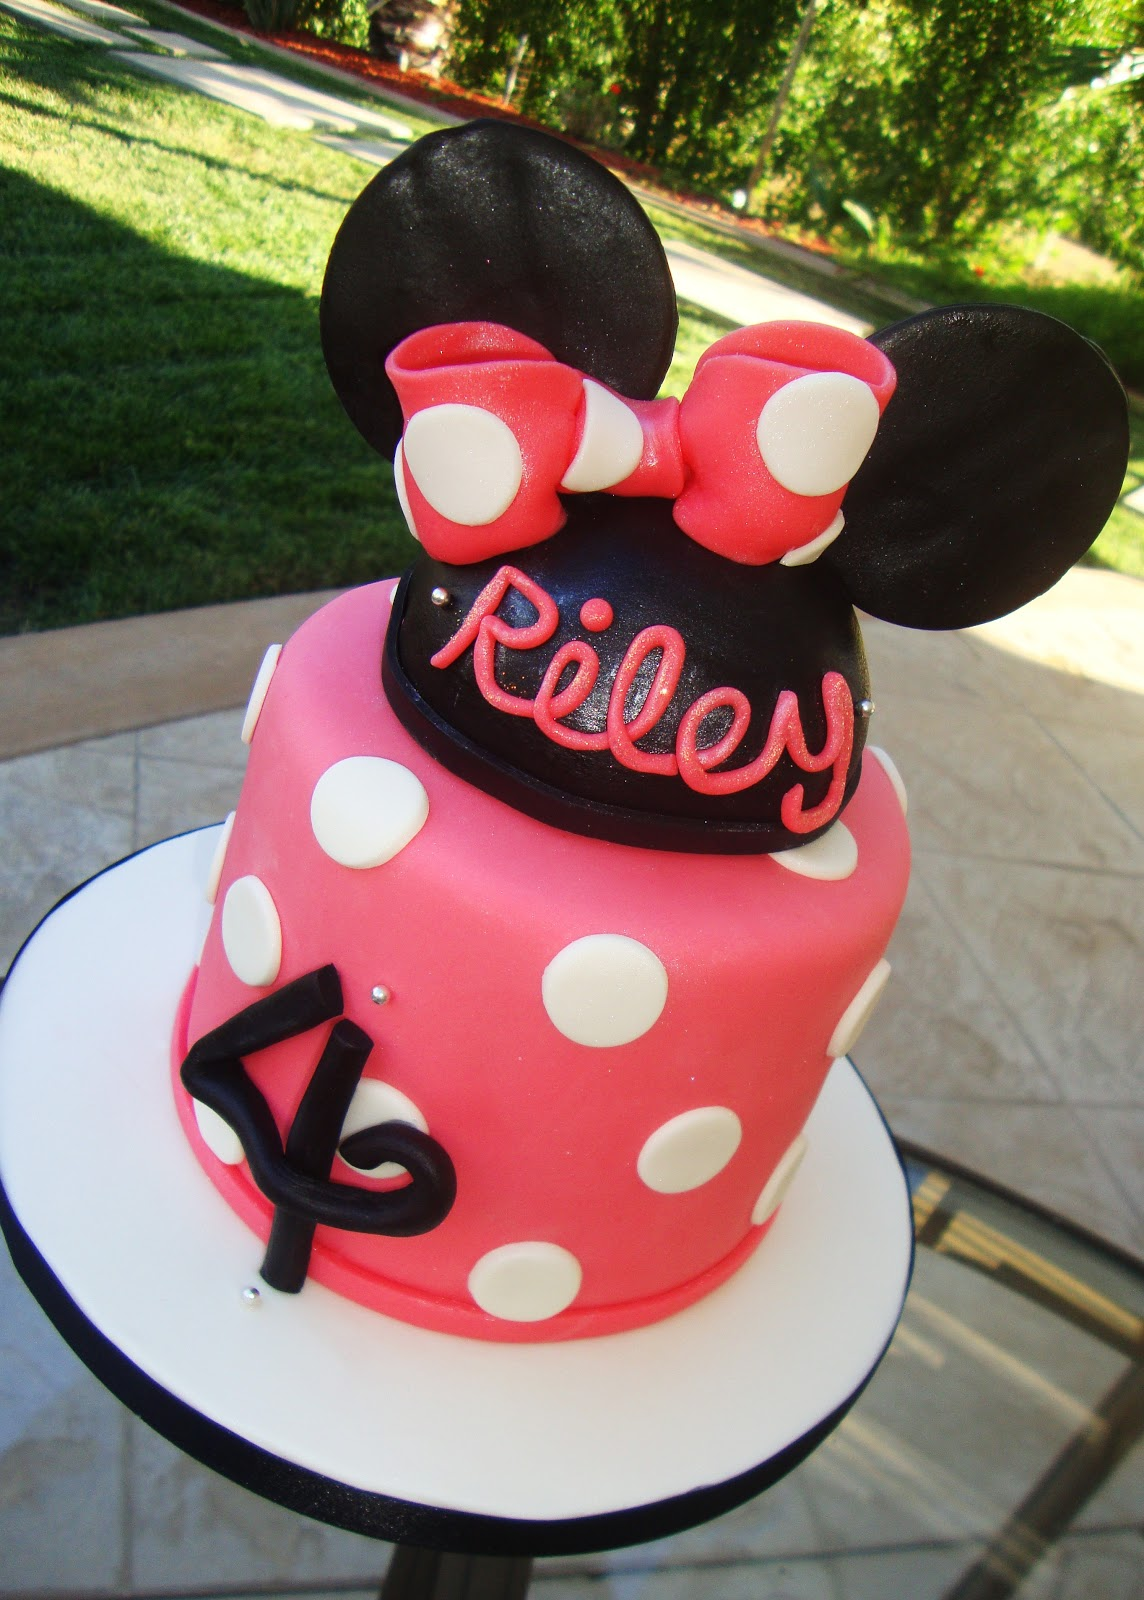 Cake Obsessions